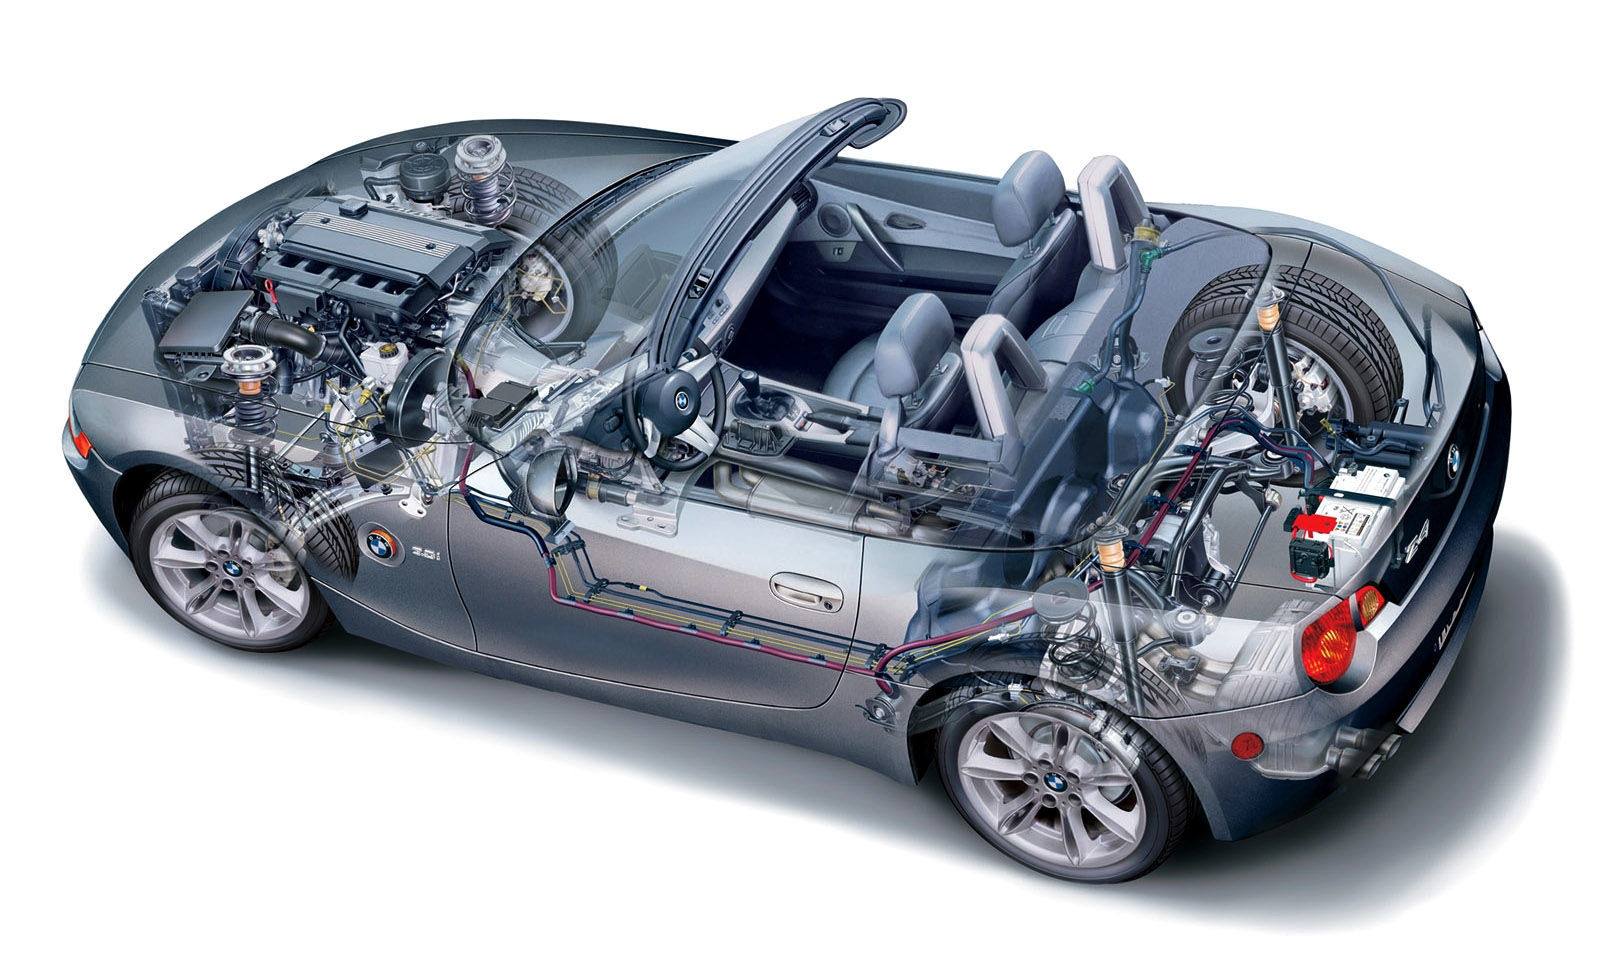 gallery-1466424077-bmw-z4-2002-pictures-3